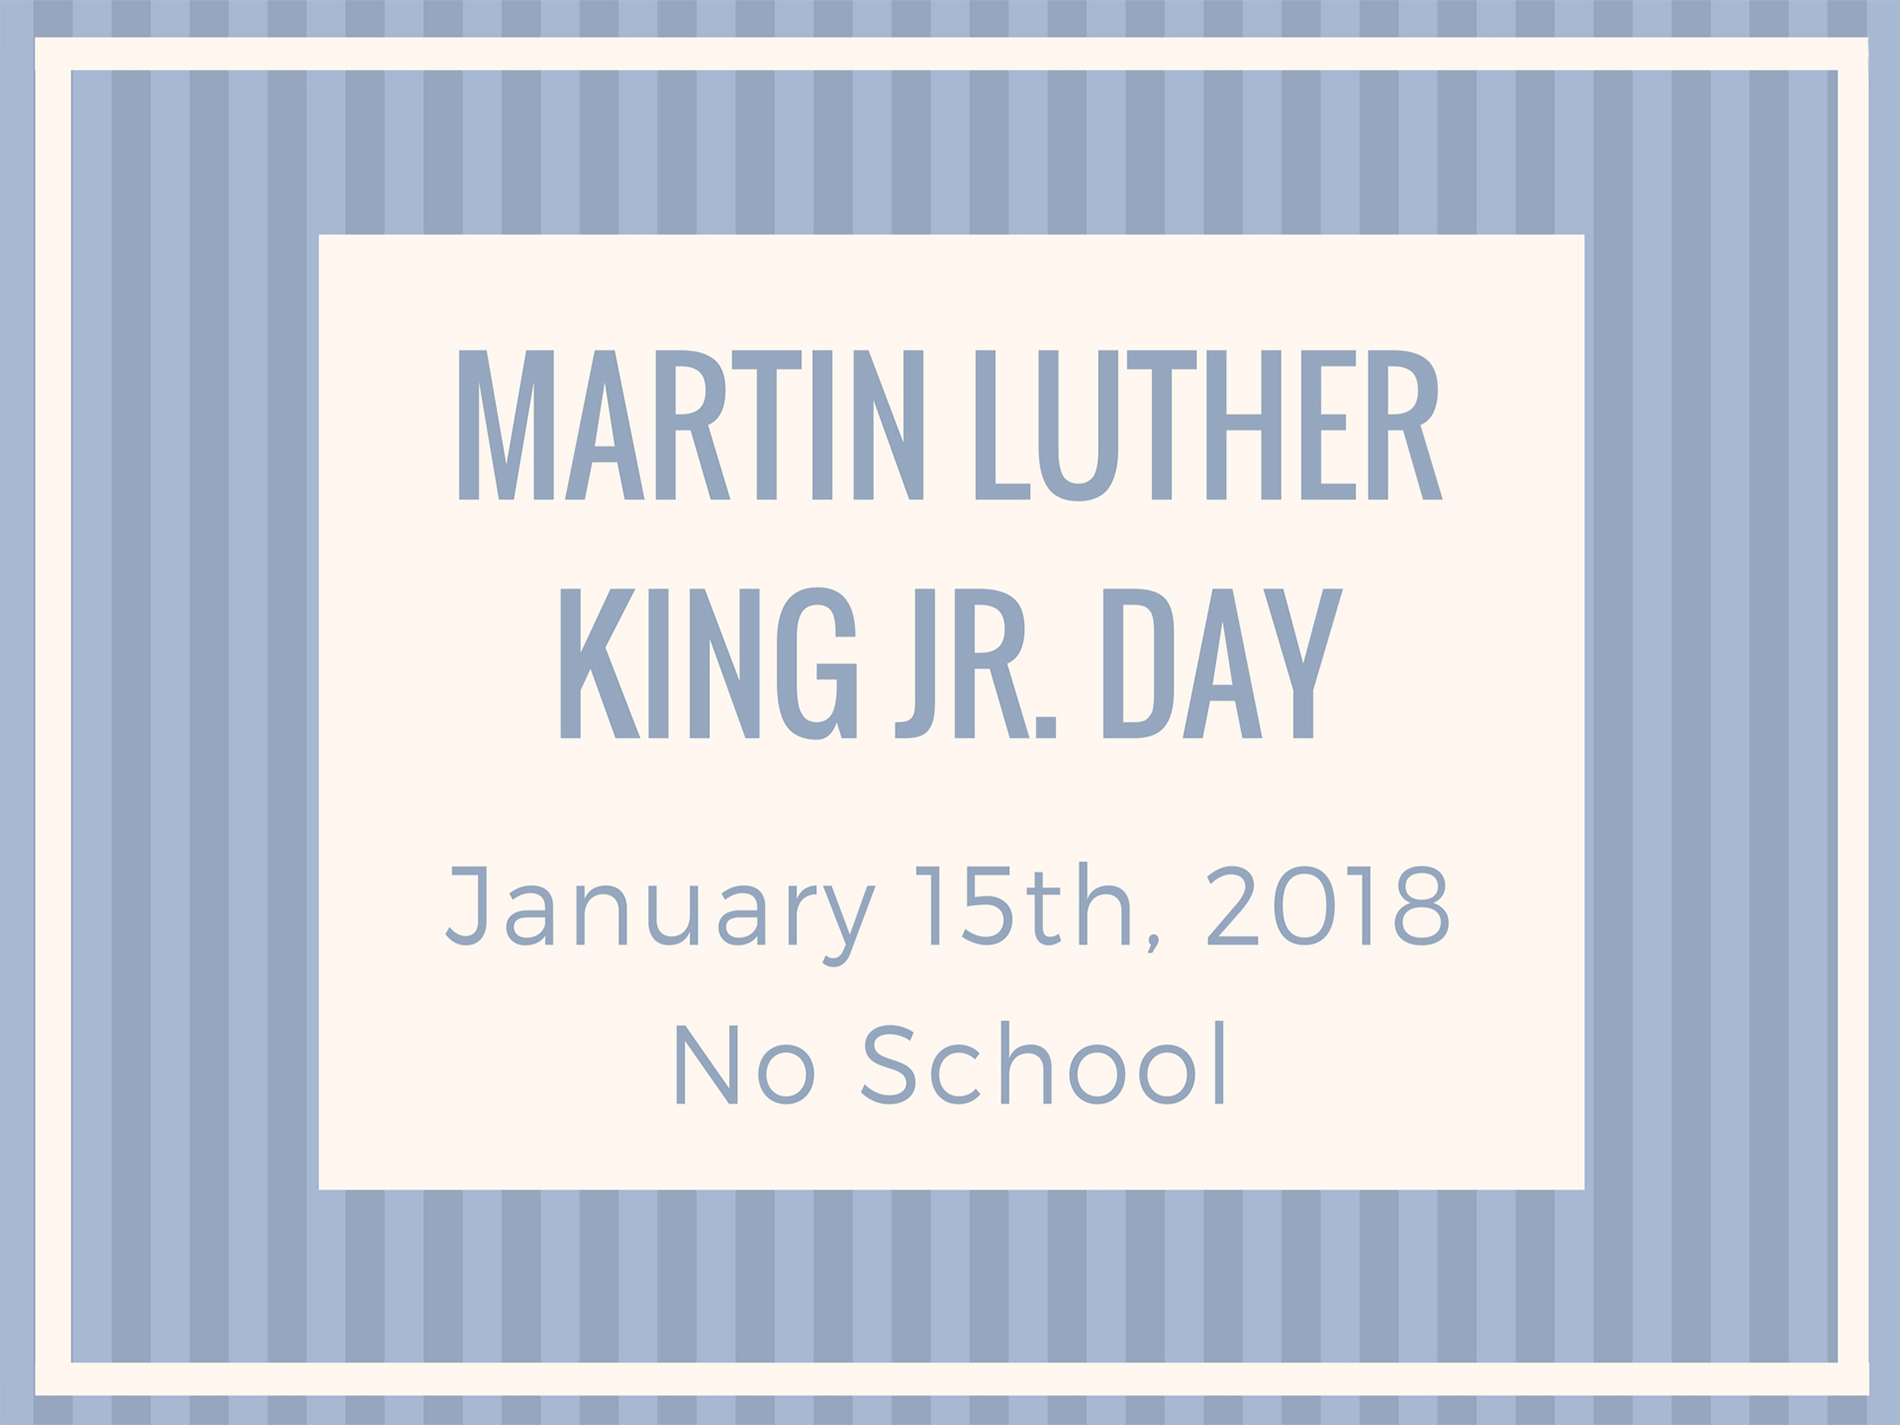 Martin-Luther-King-Jr-Day.jpg